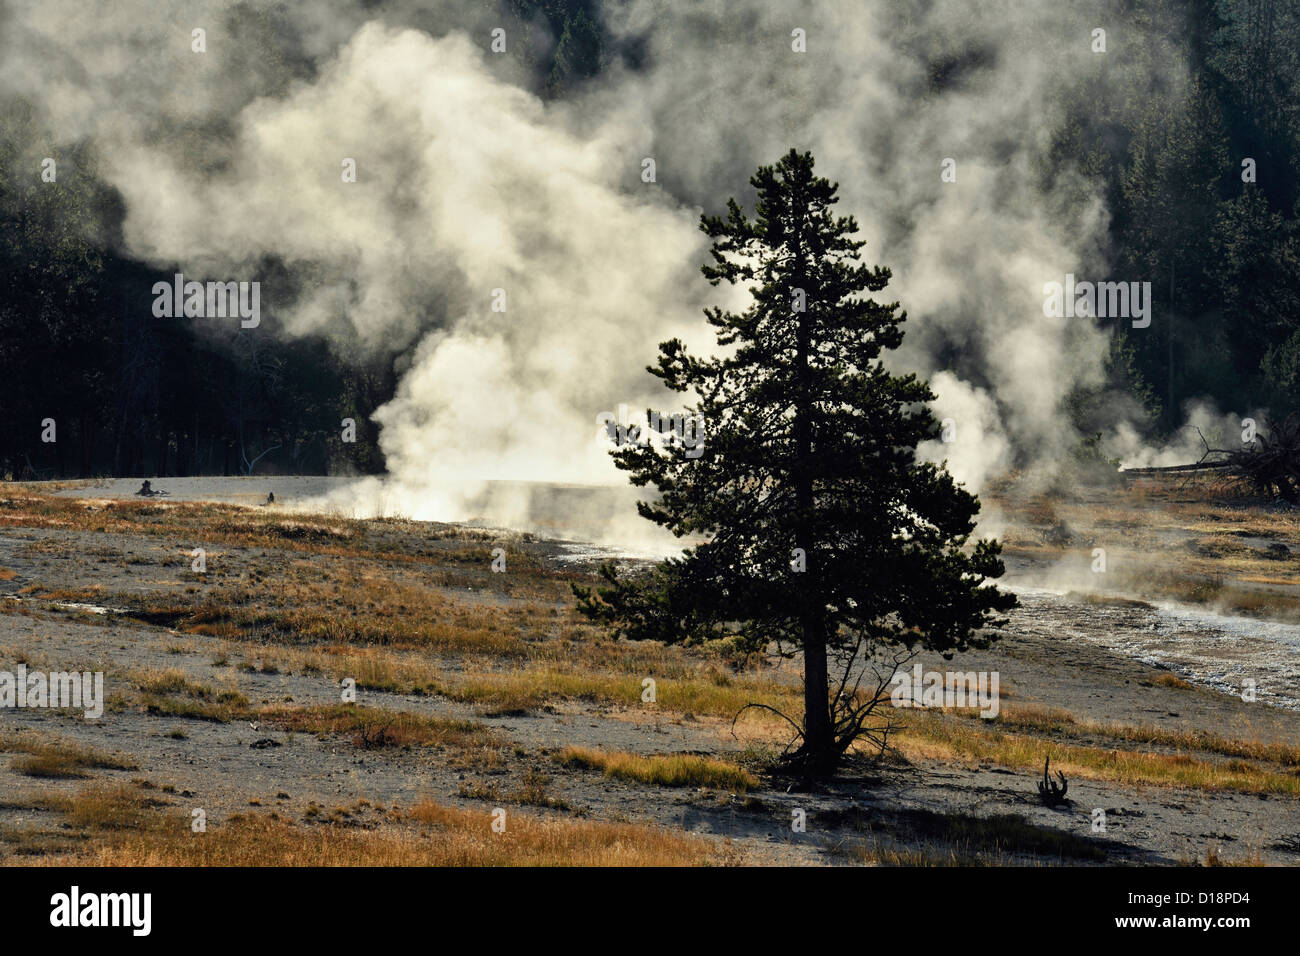 Steam vents along the Firehole River, Yellowstone National Park, Wyoming, USA - Stock Image